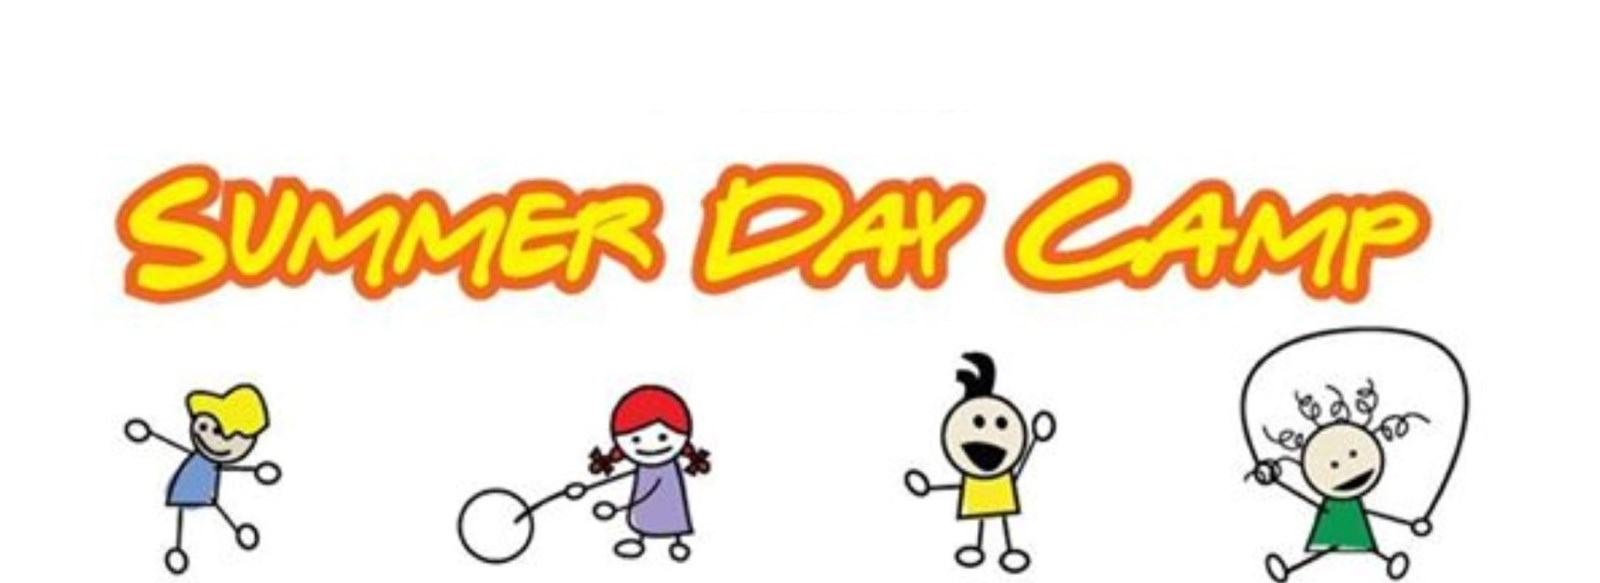 Summer Day Camp Logo